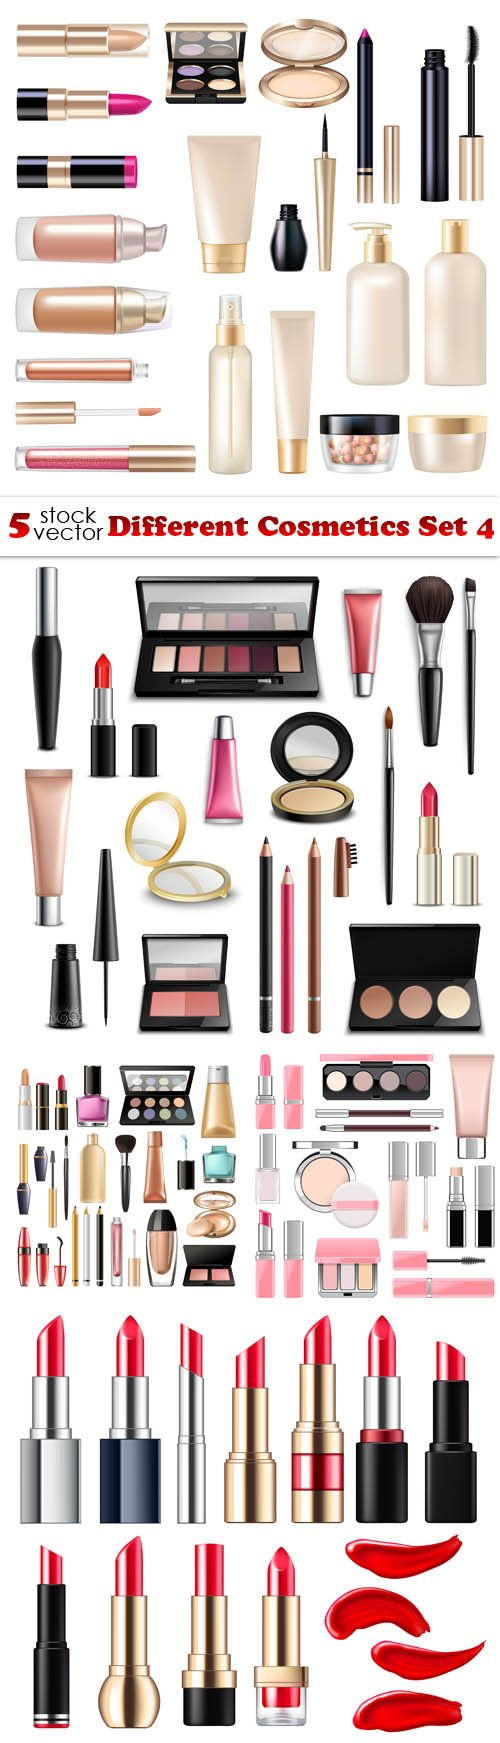 Vectors - Different Cosmetics Set 4